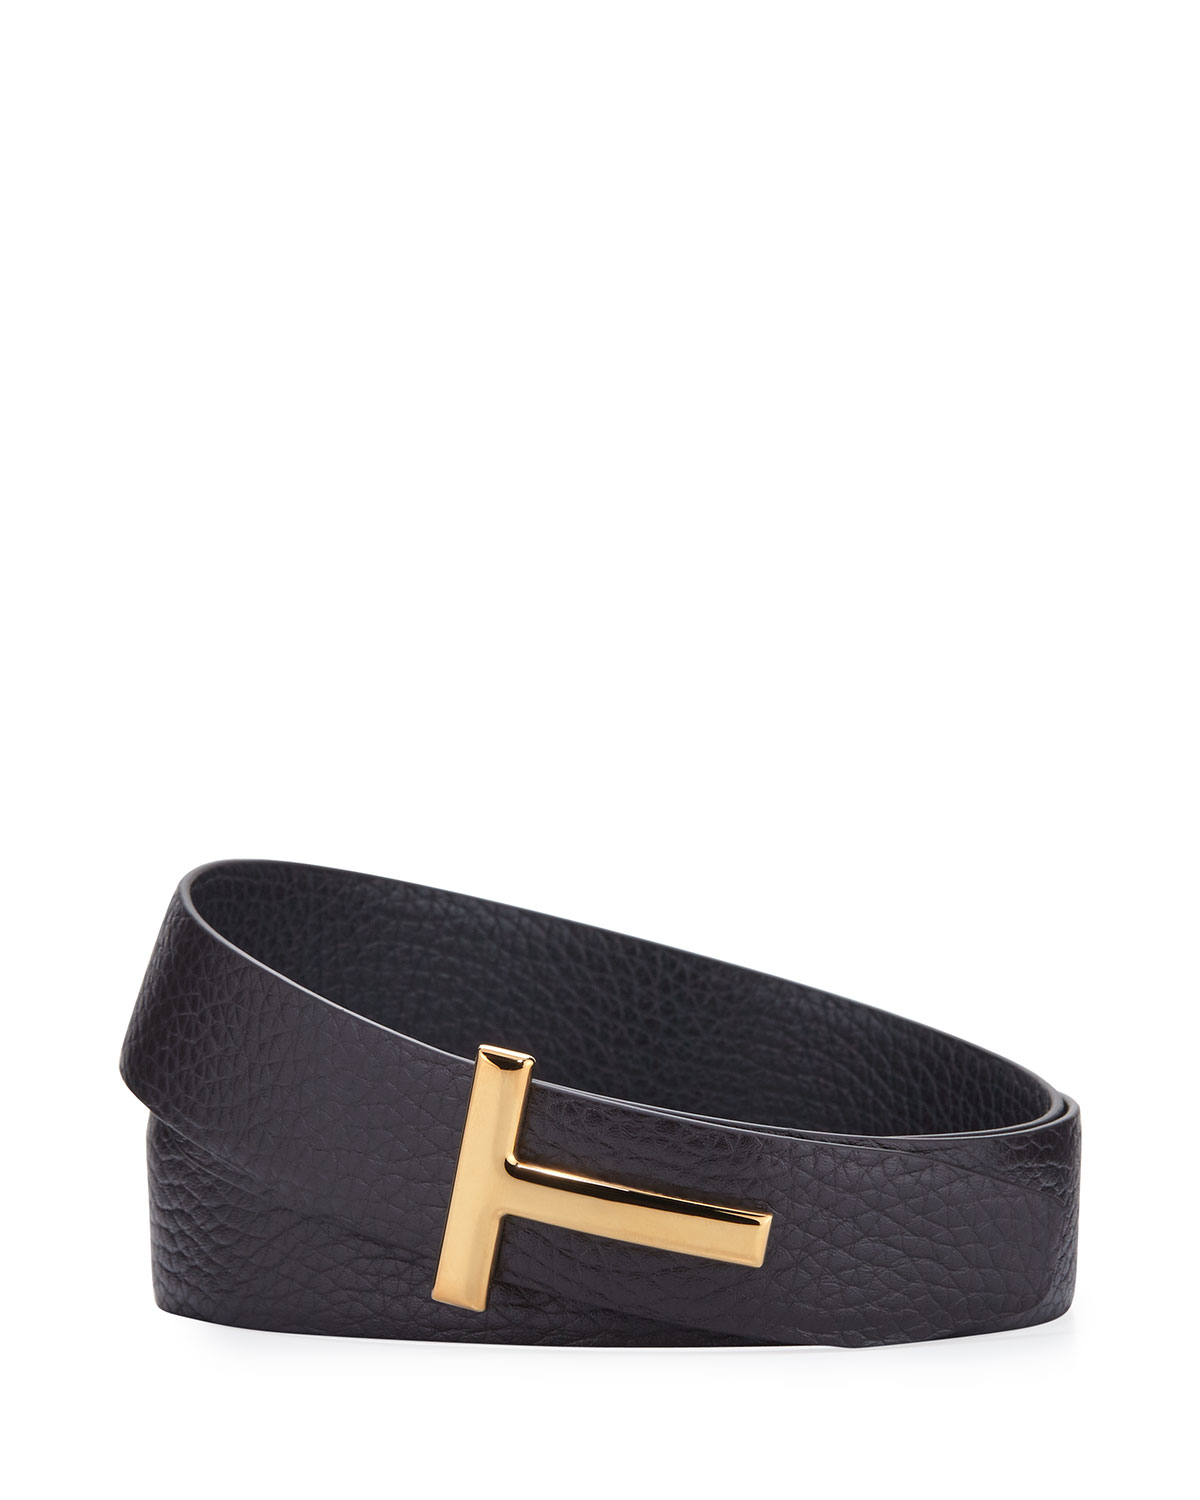 6144d977fd27 TOM FORD T-Buckle Leather Belt